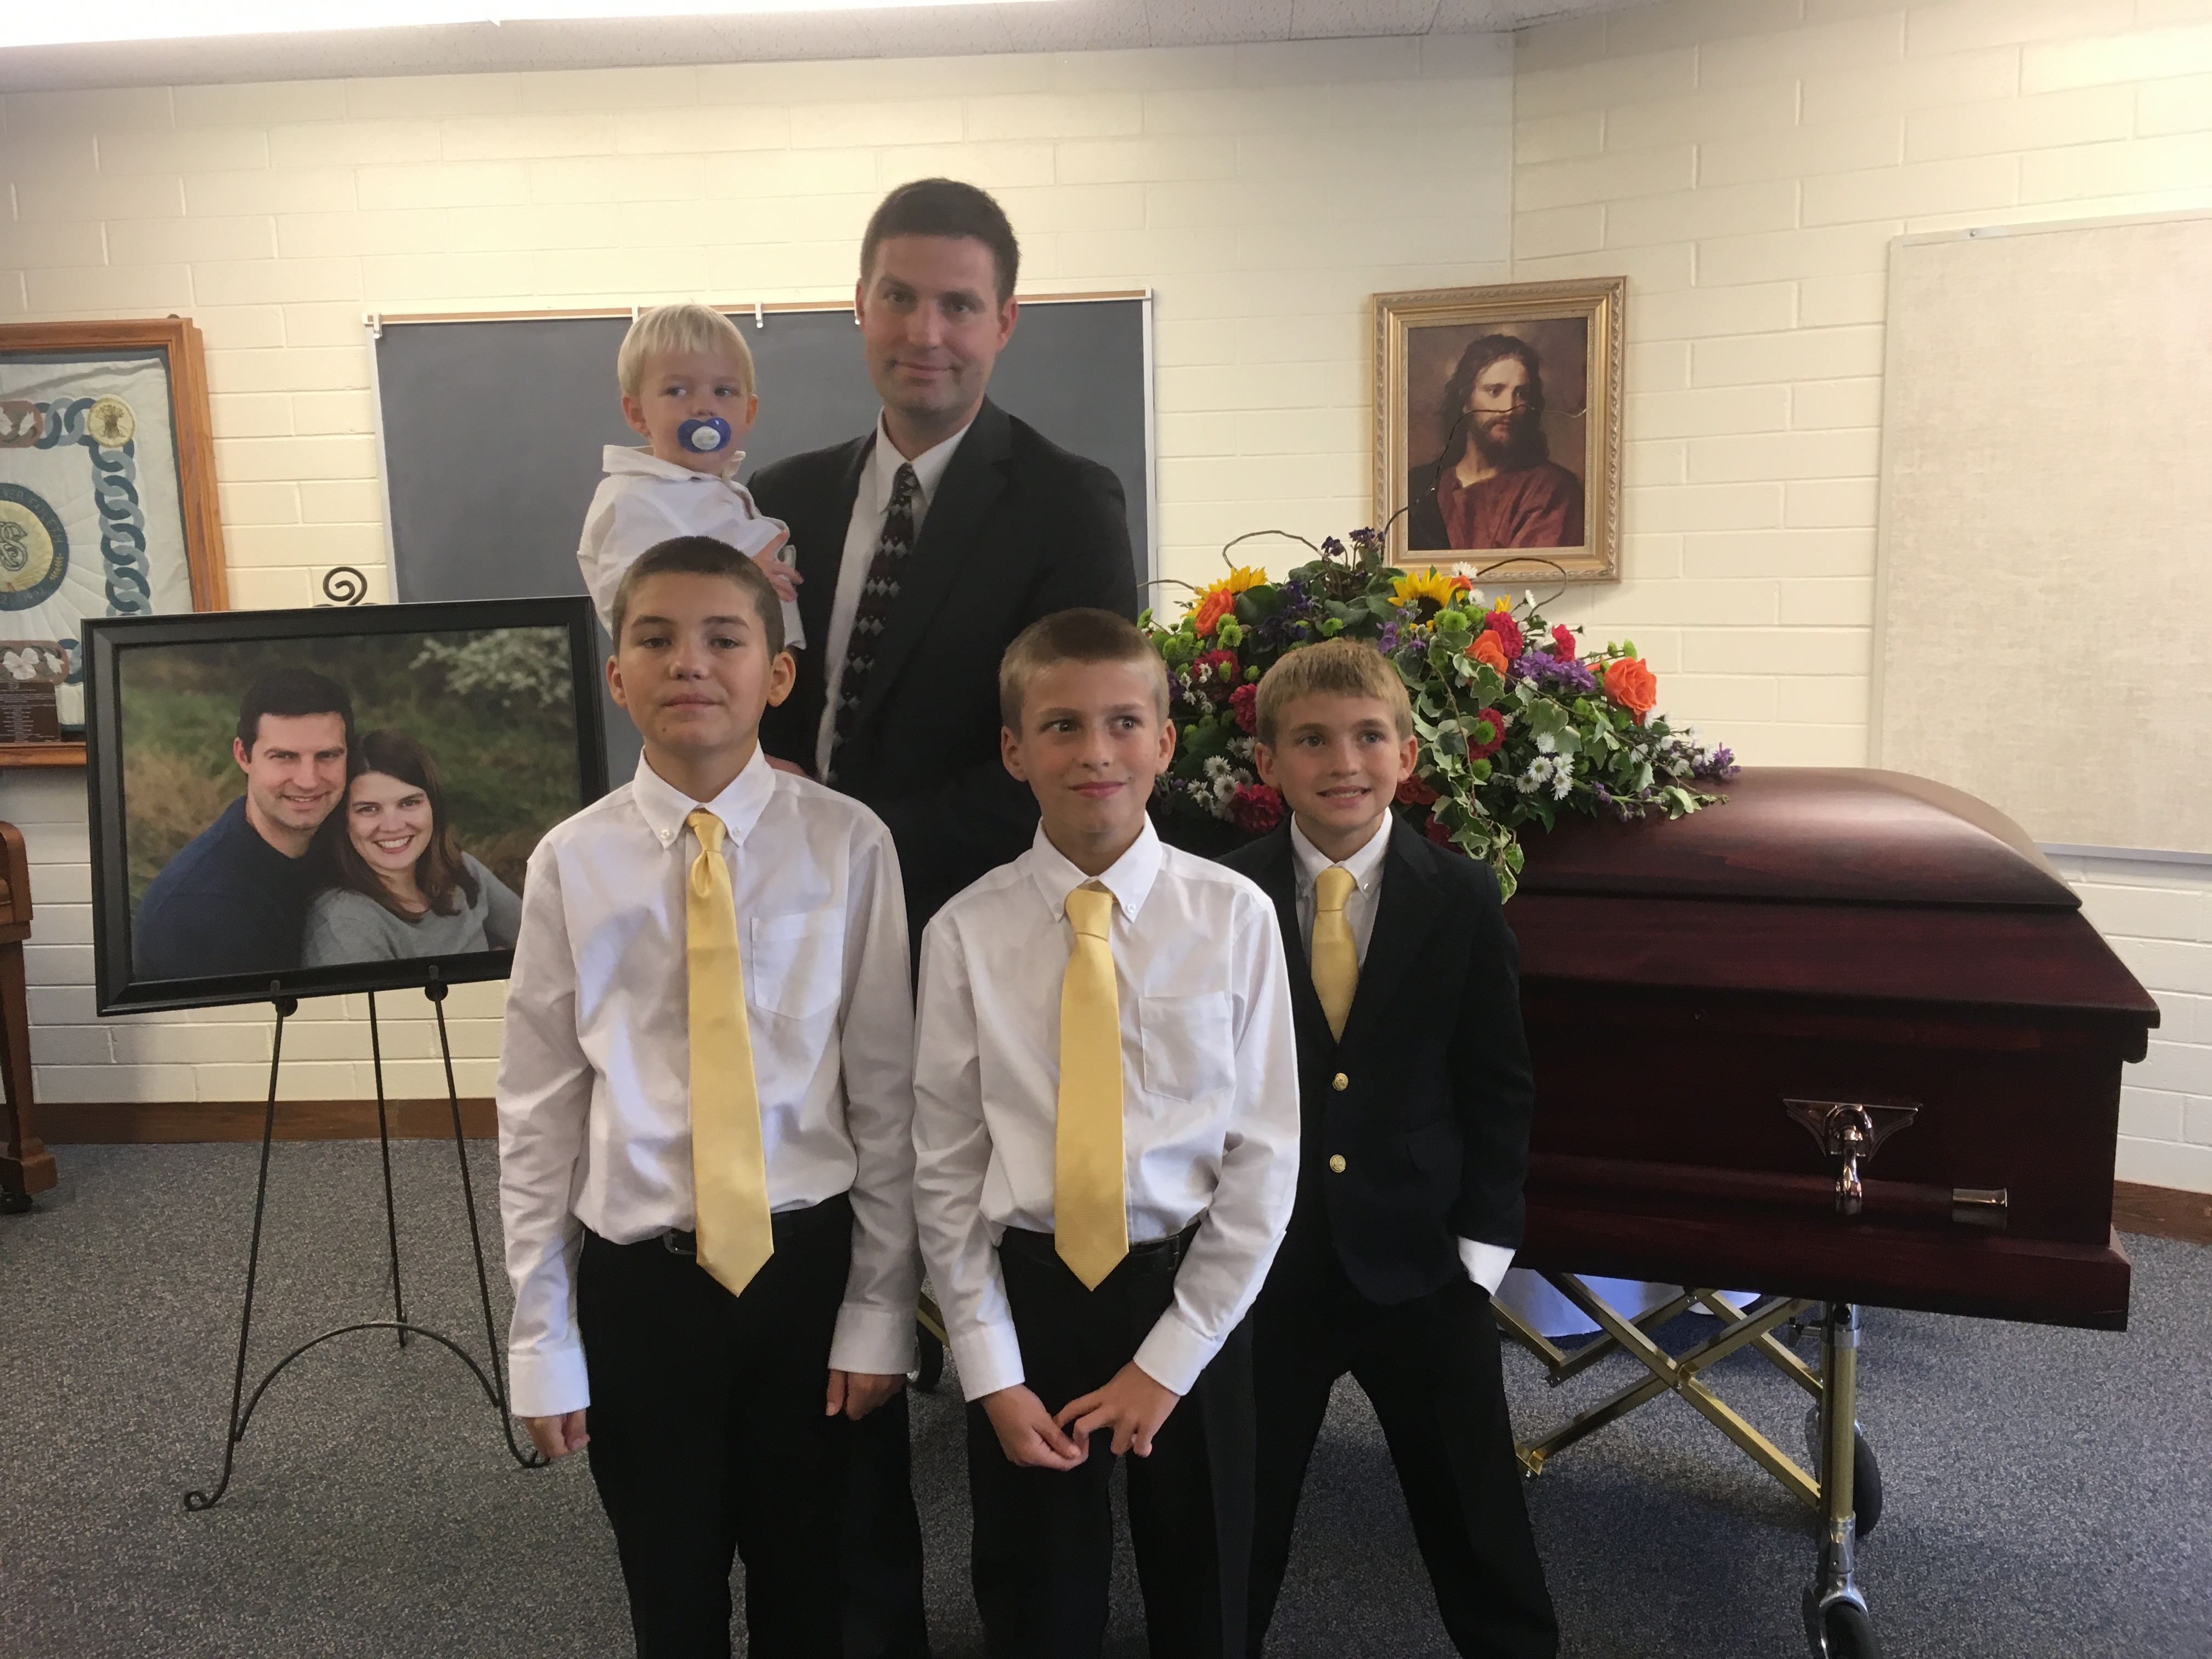 Jacob Evans with his four sons at his wife Katie's funeral.